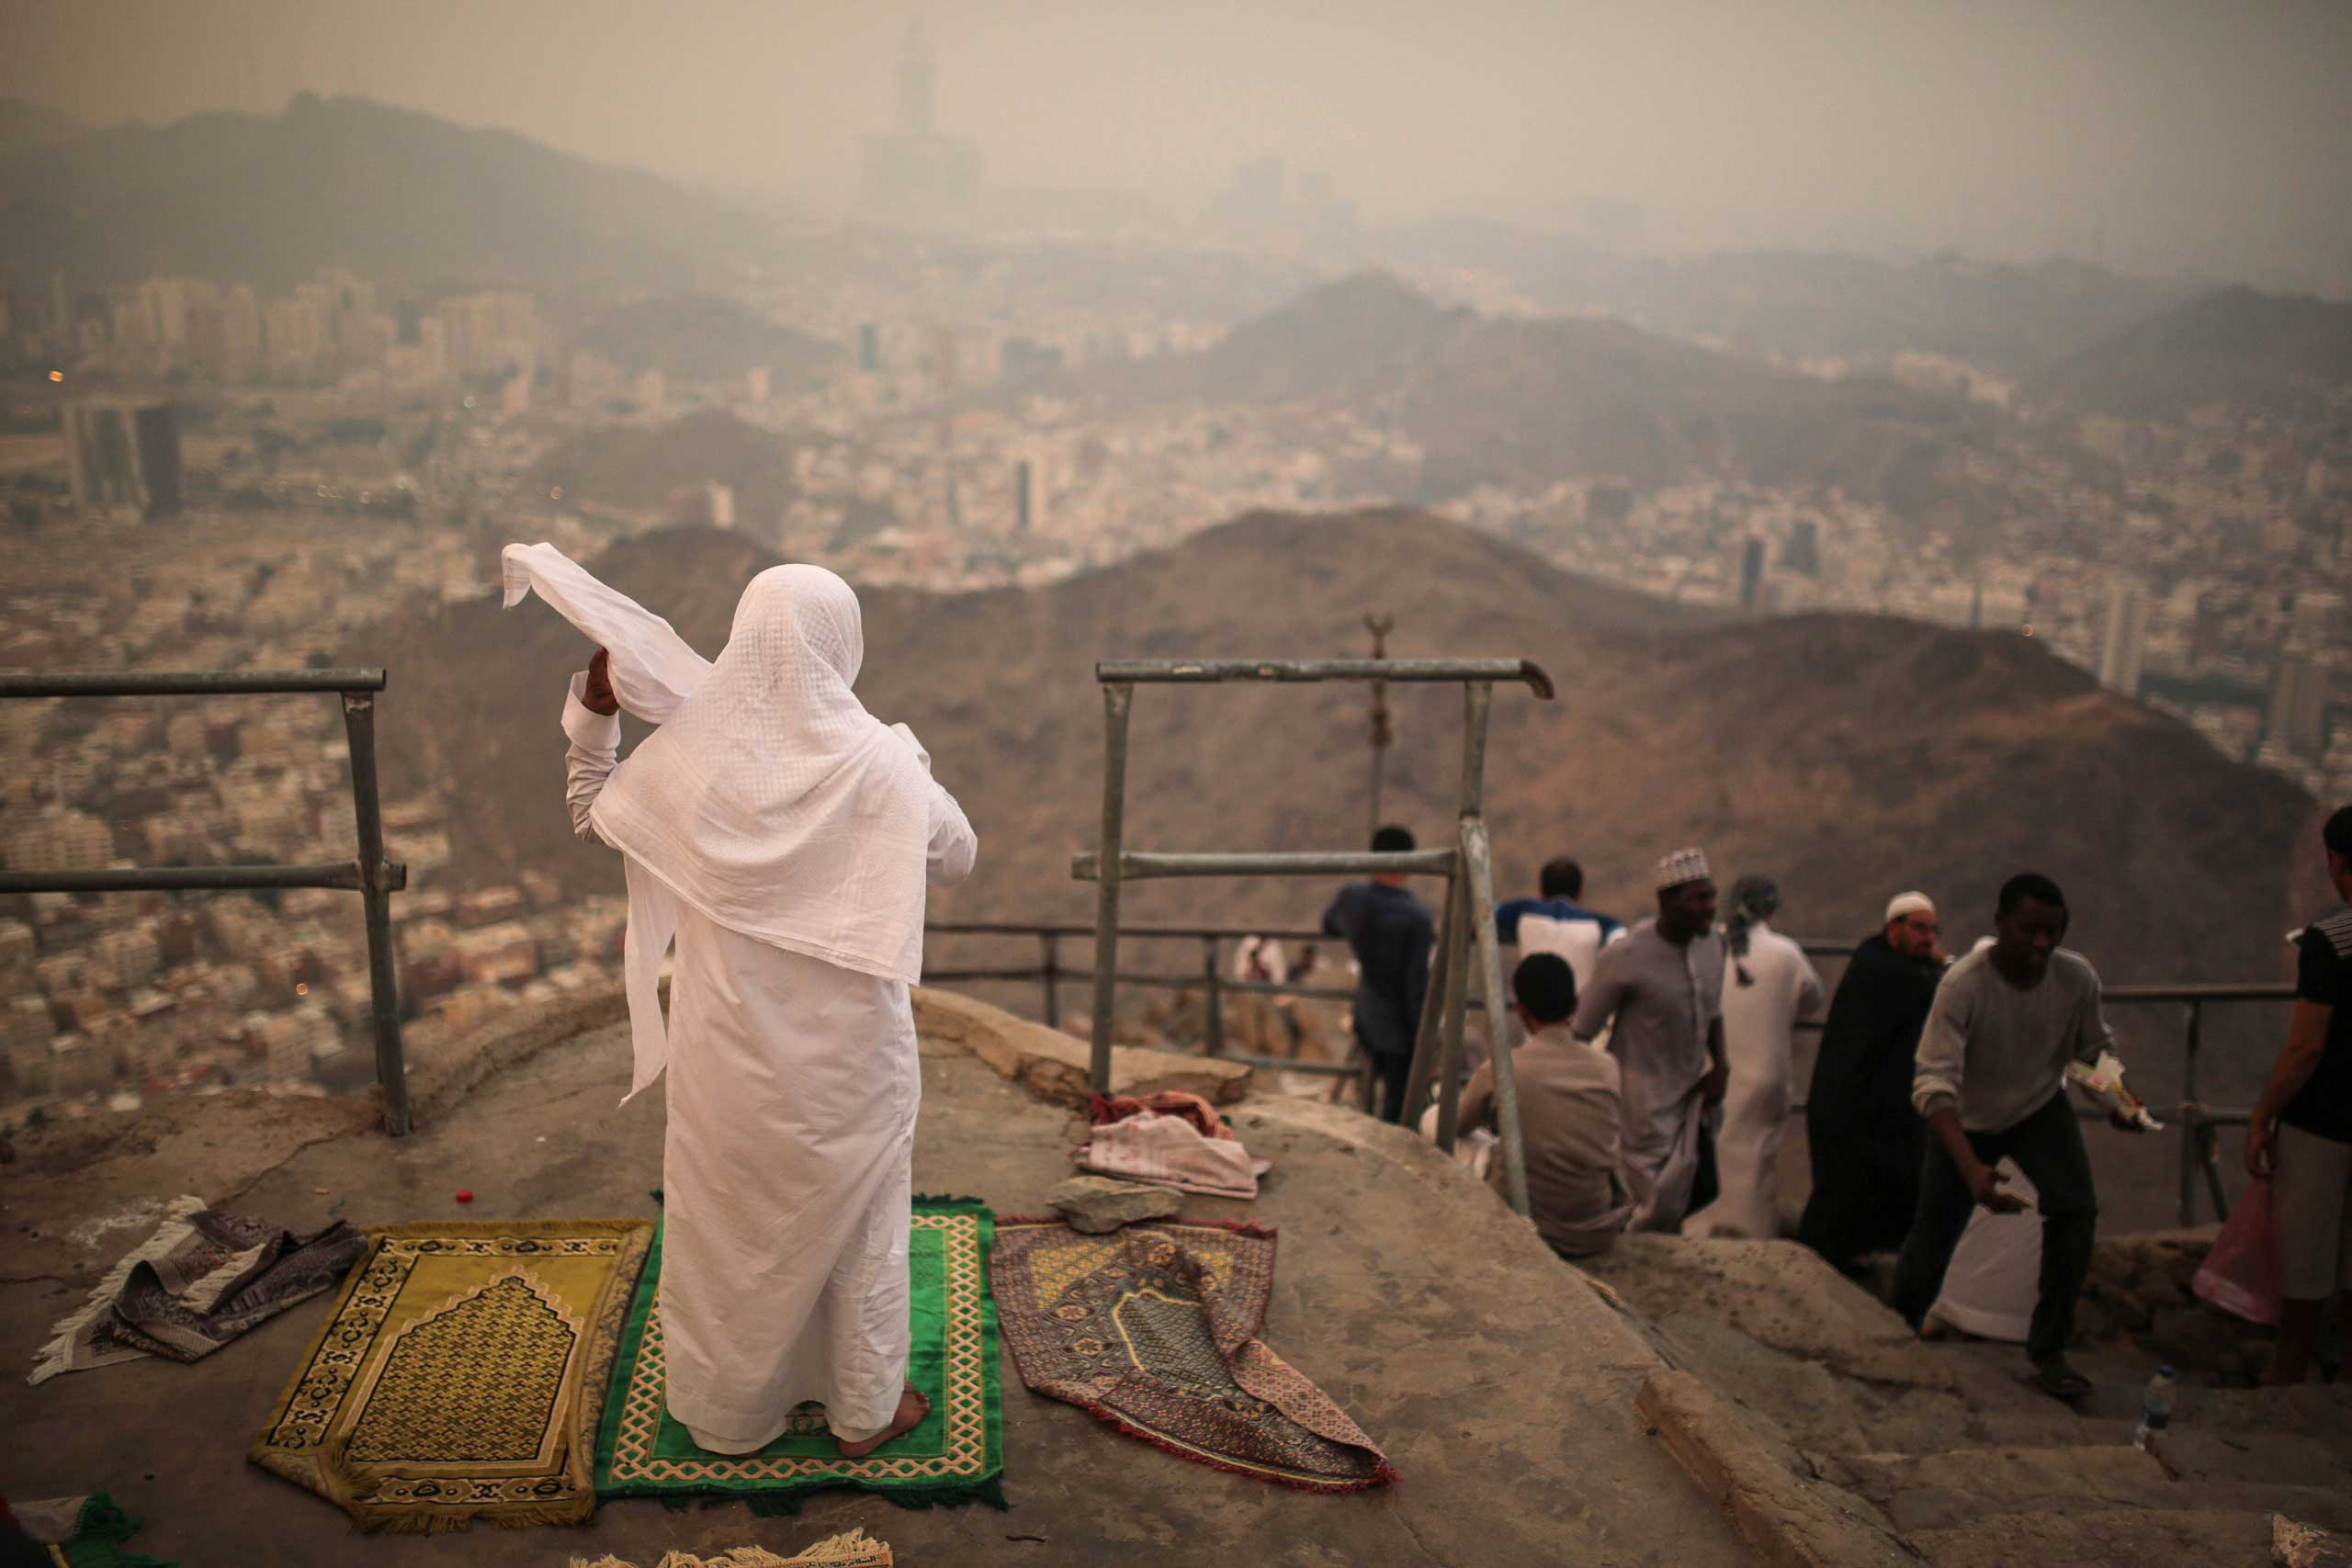 Muslim pilgrims pray atop the Noor Mountain outside the Hiraa cave, where Prophet Muhammad received his first revelation from God to preach Islam, on the outskirts of Mecca, on Sept. 18, 2015.